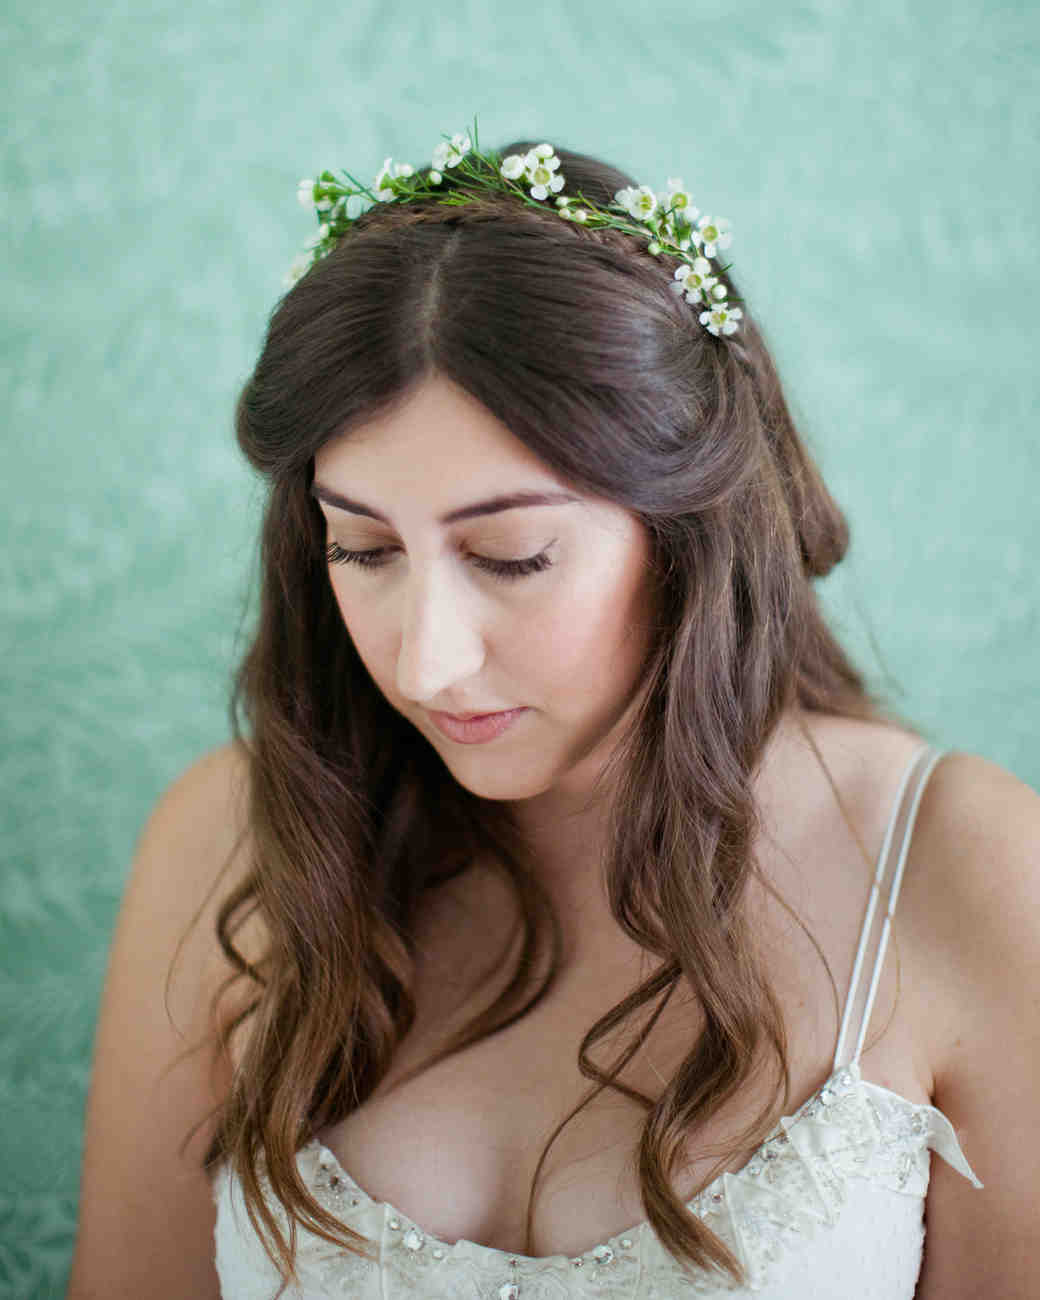 medium length wedding hairstyle with wax flower accents